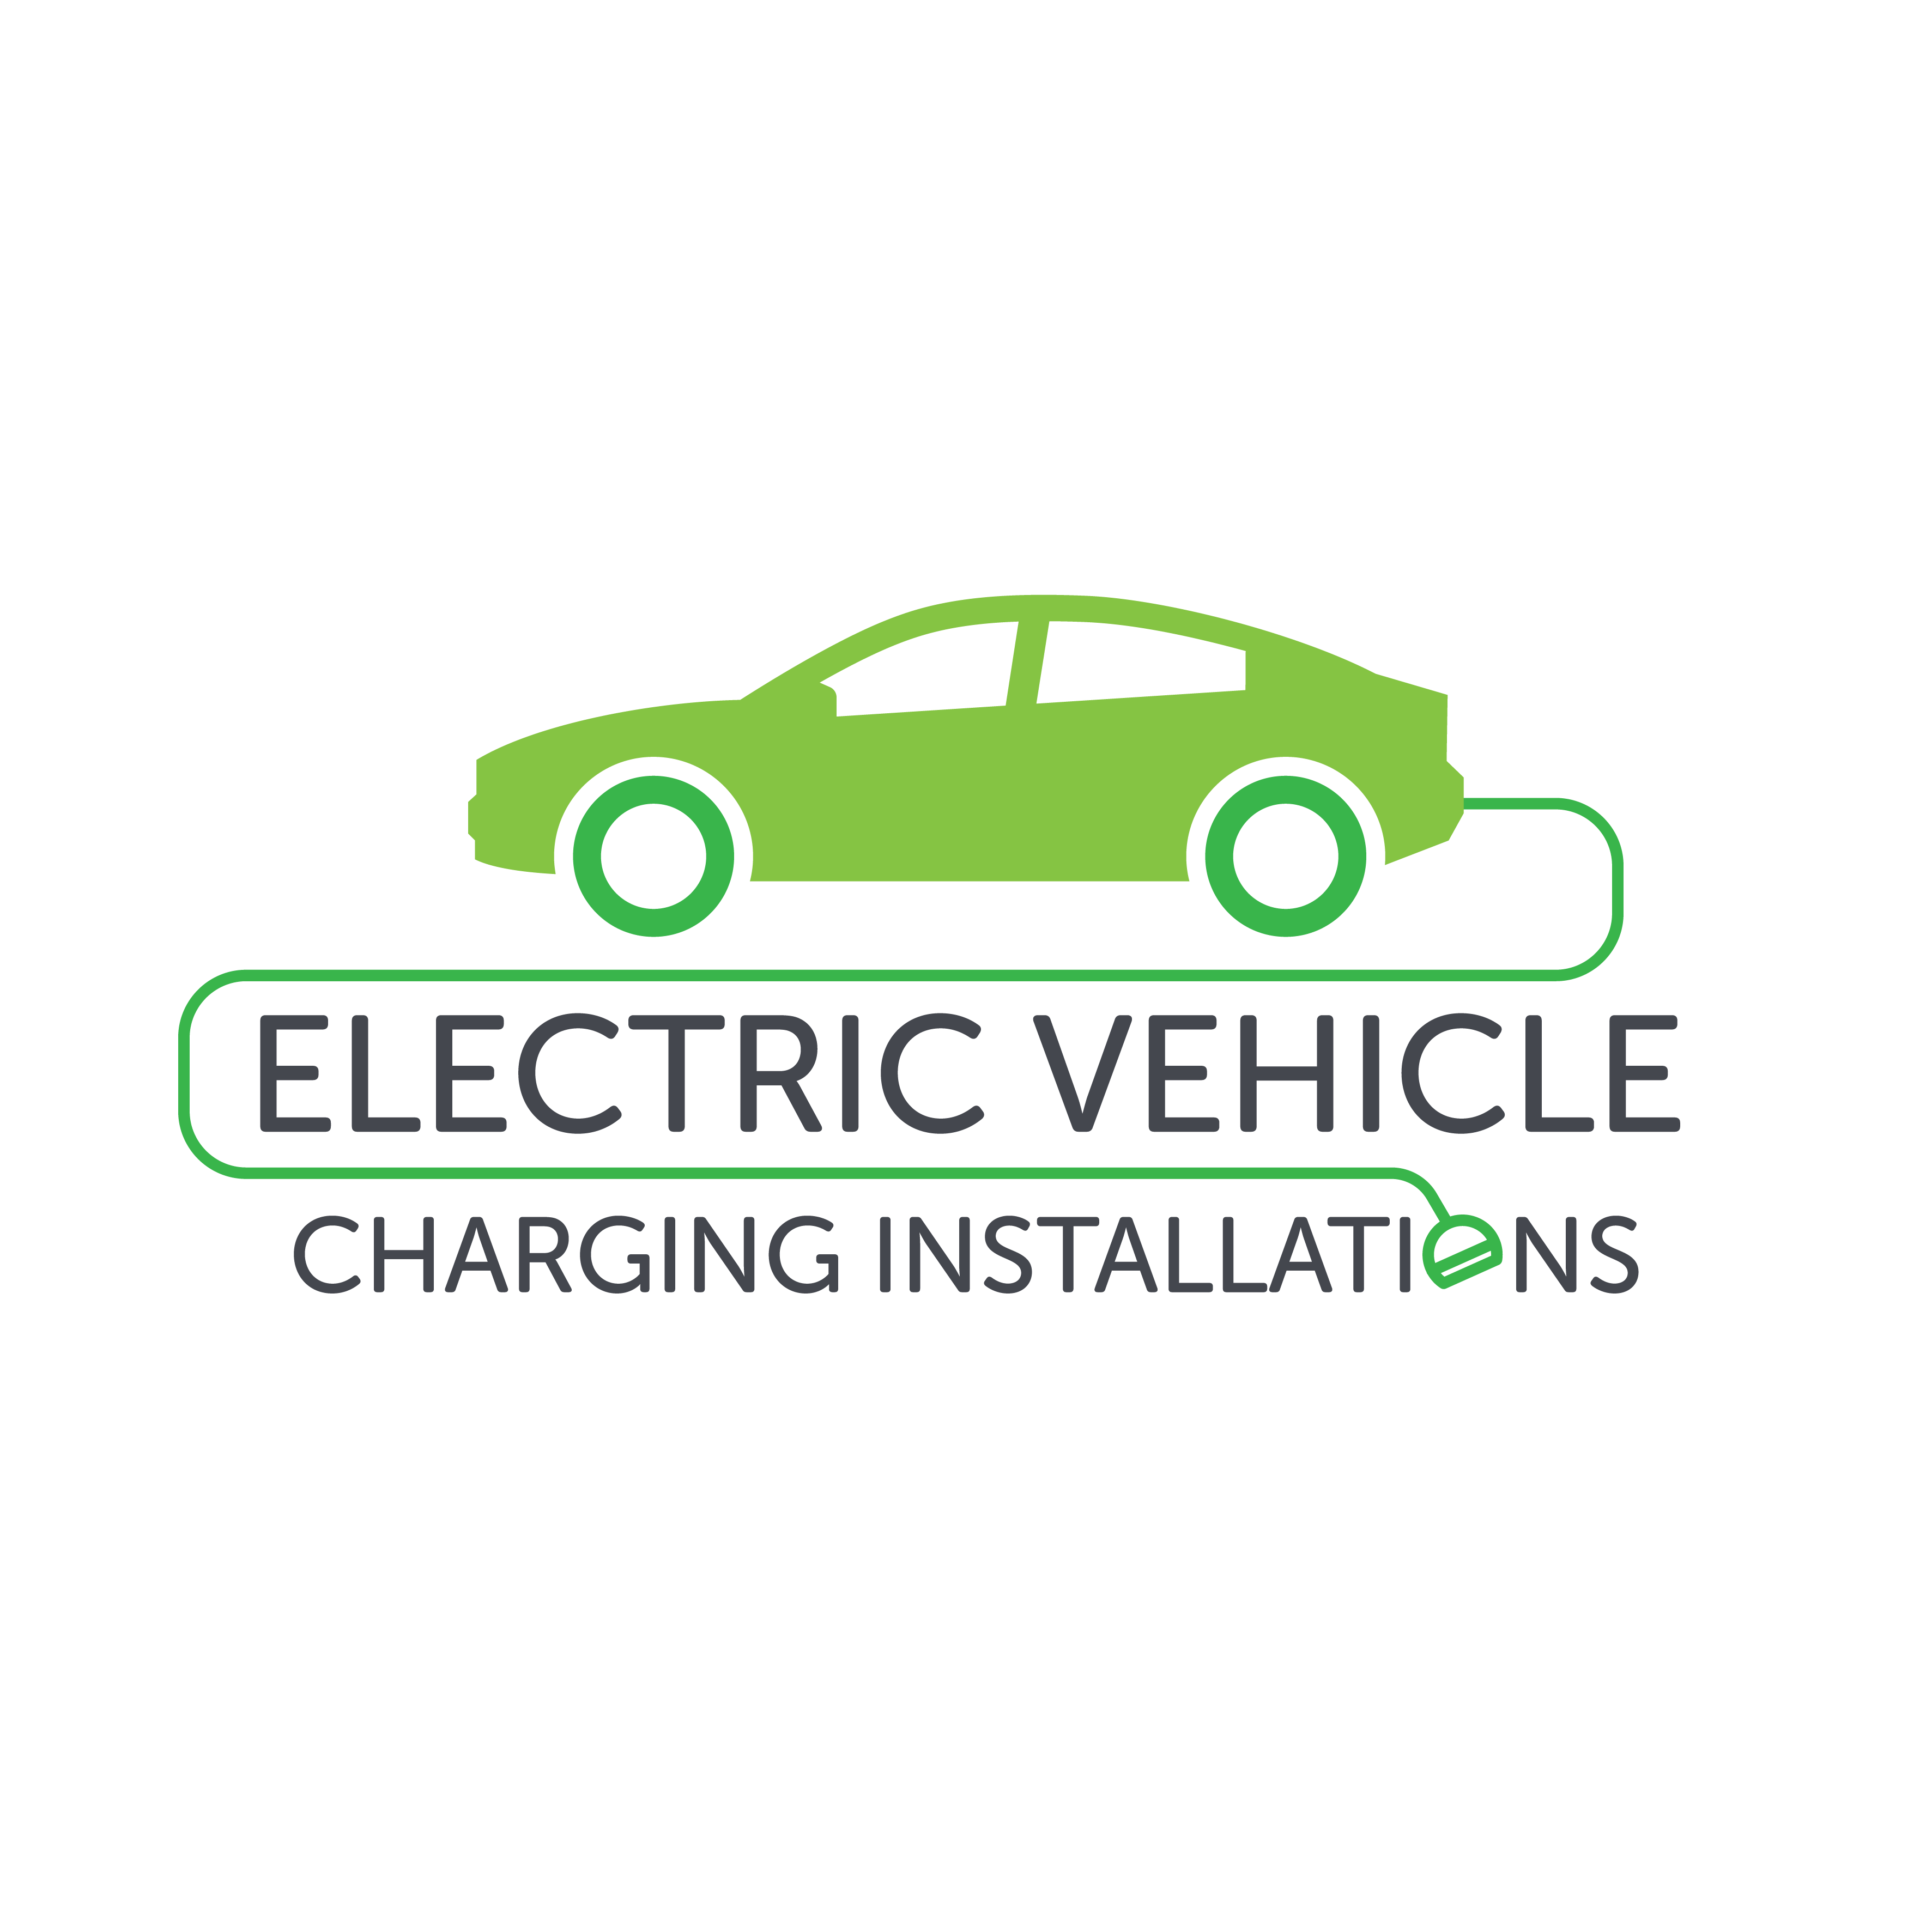 Benefits Of Owning An Electric Car Electric Vehicle Charging Installations